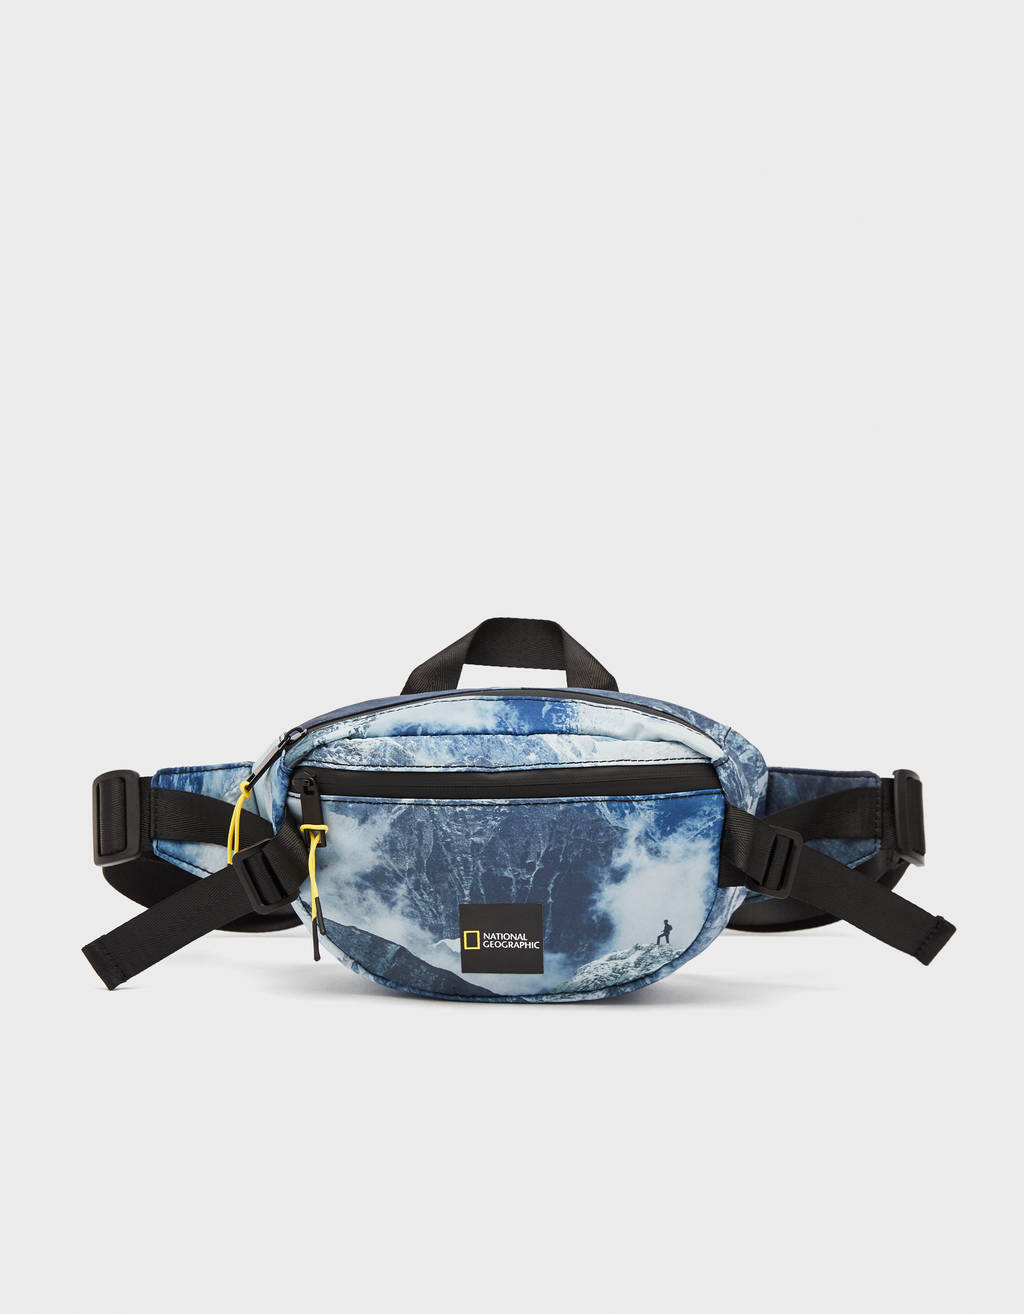 National Geographic belt bag